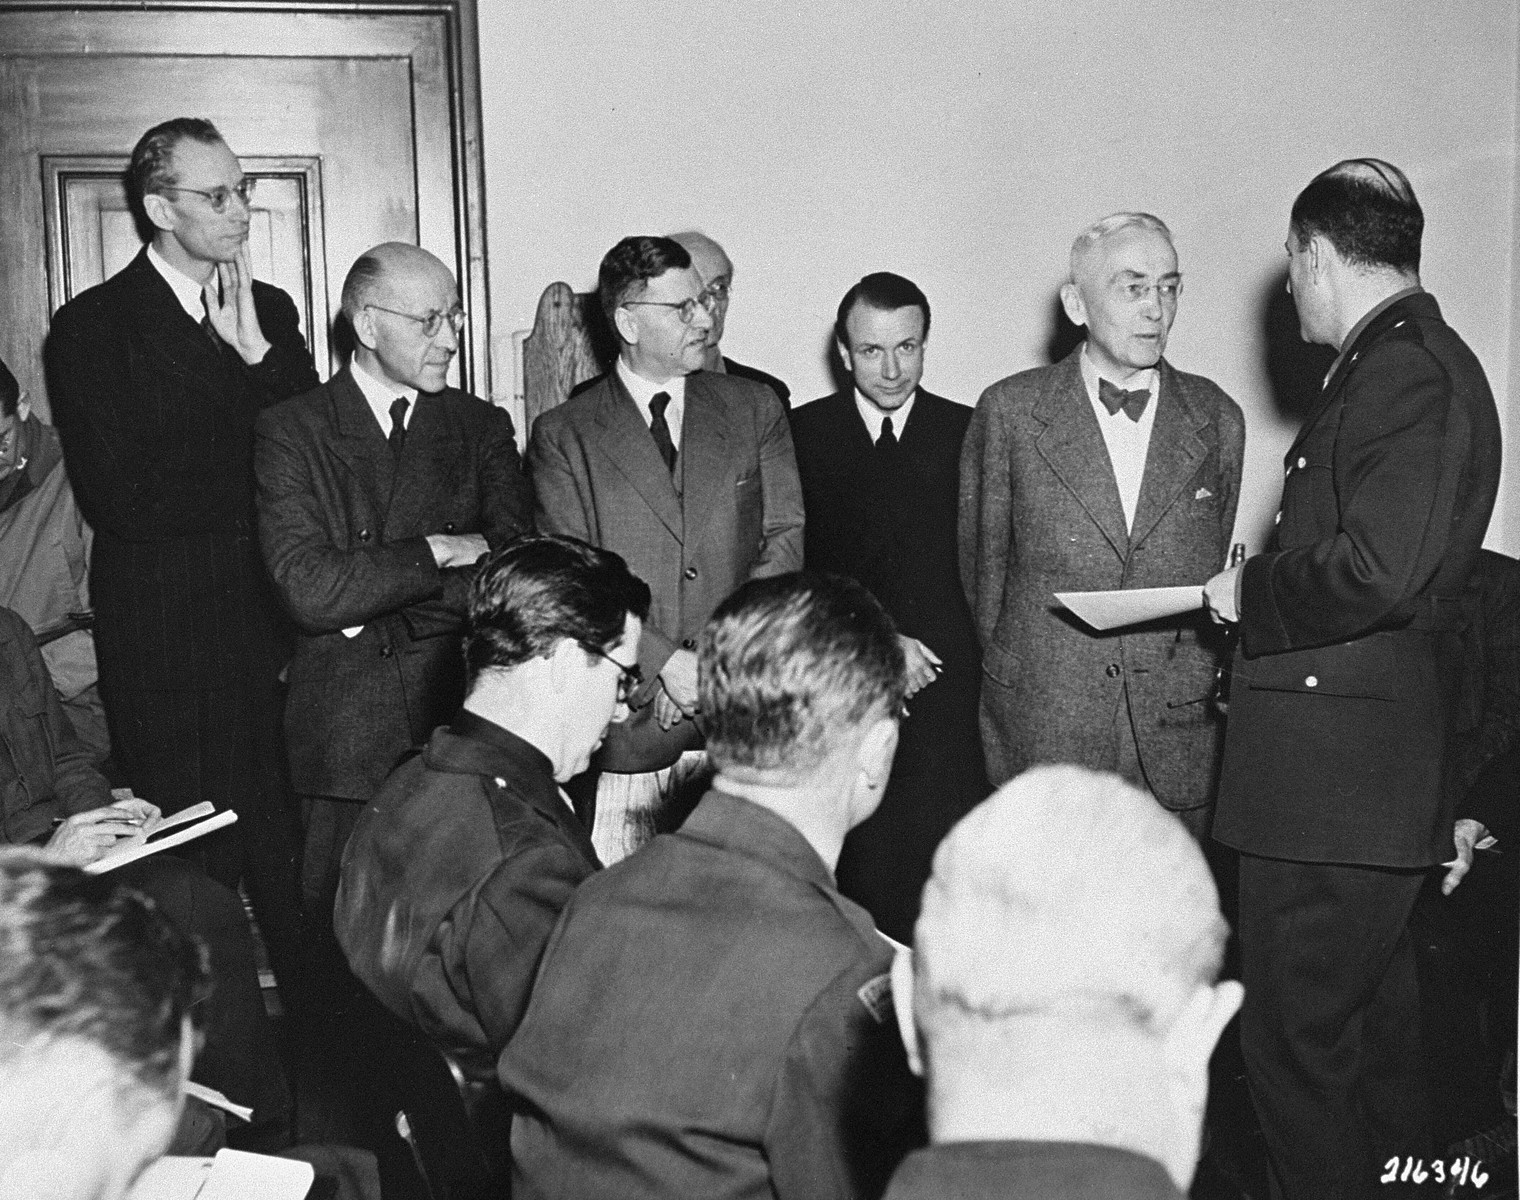 Defense attorney Dr. Otto Stahmer, the counsel for Hermann Goering, is introduced to a roomful of news correspondents before the beginning of the International Military Tribunal trial of war criminals at Nuremberg.